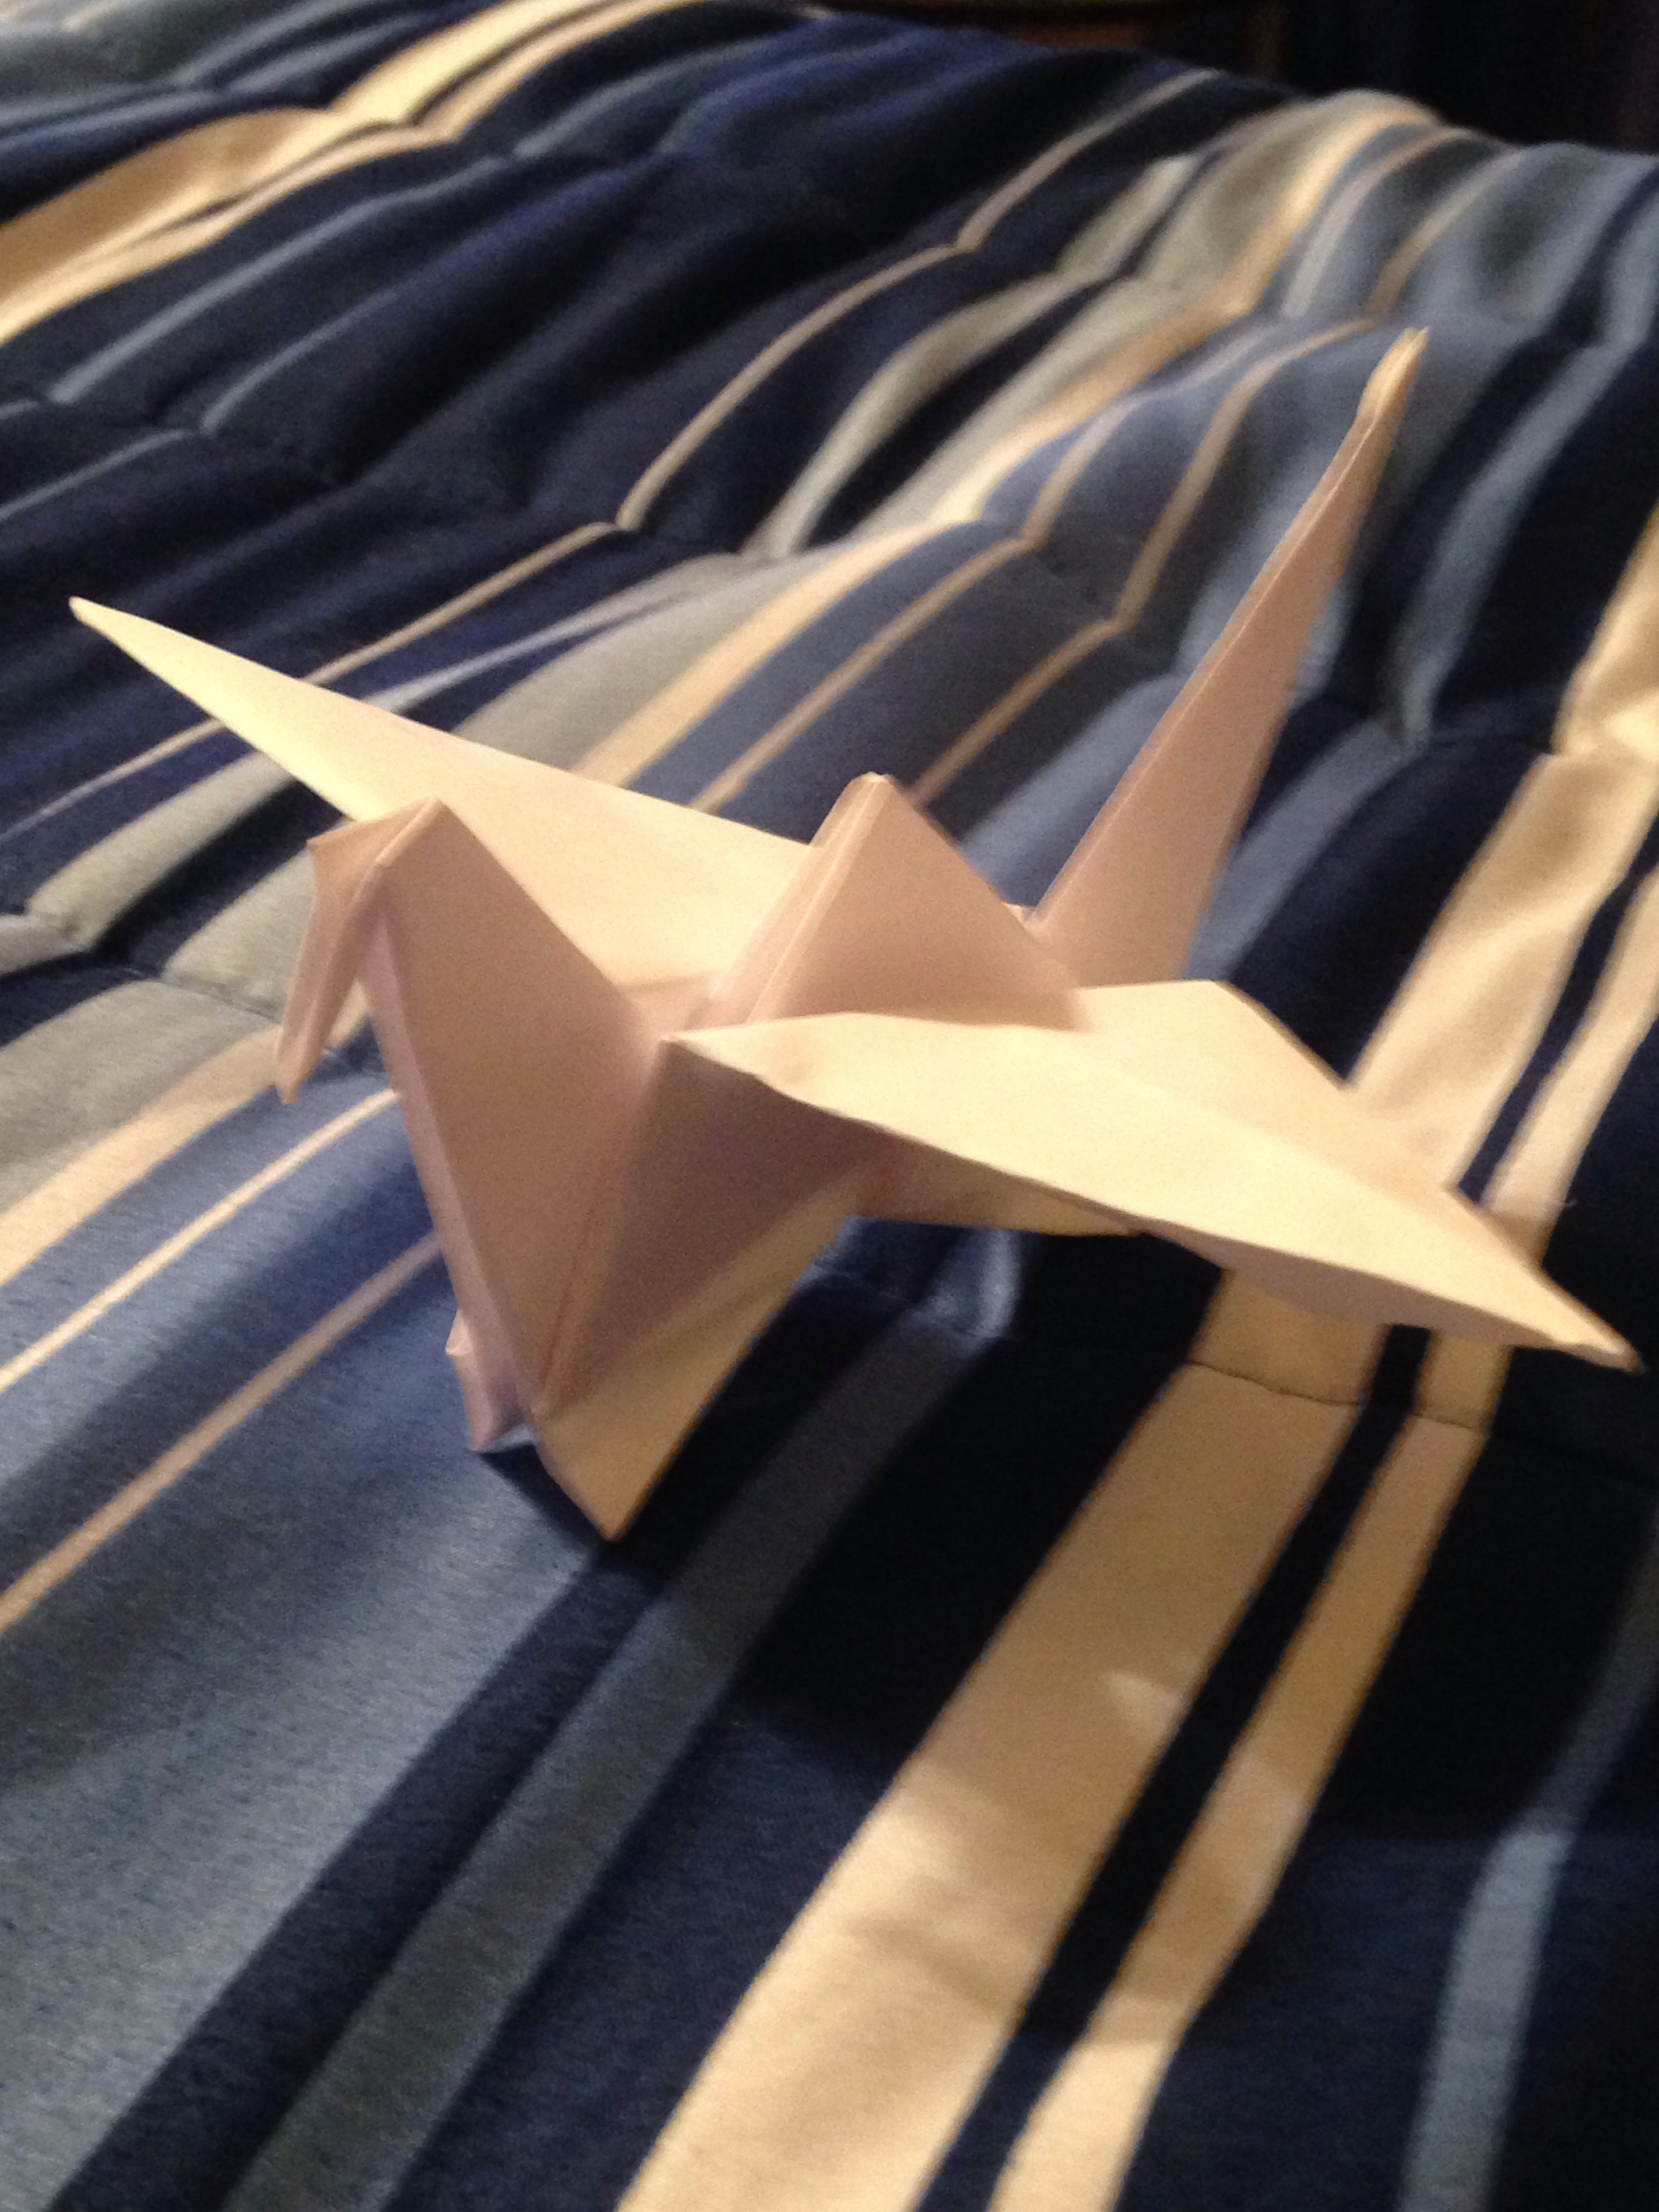 Origami Celebration Paper Crane - How to Make an Origami Flapping ... | 3264x2448